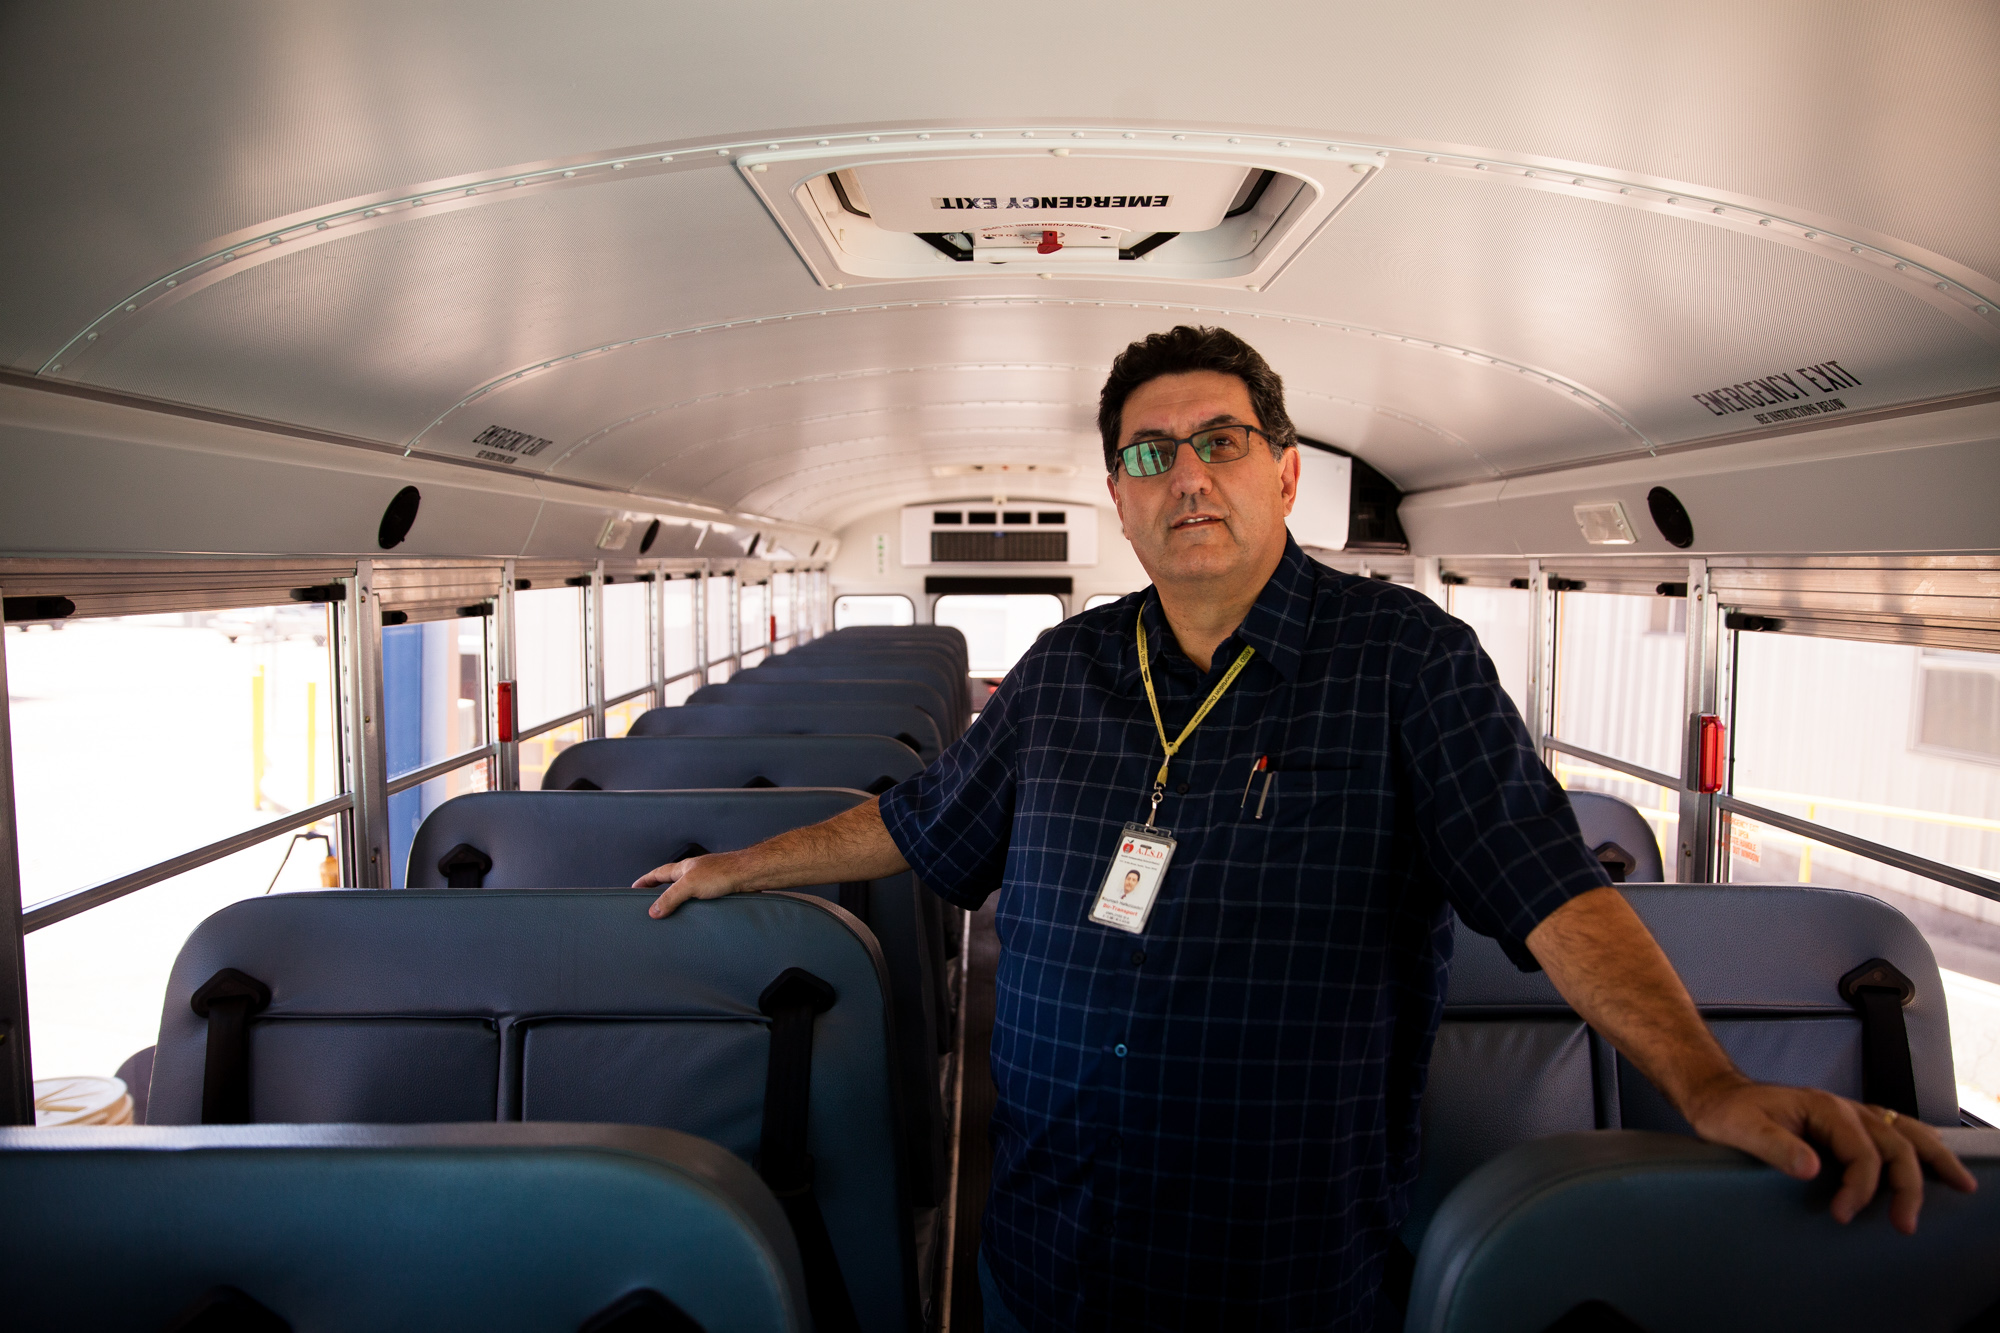 Kris Hafezizadeh, Director of Transportation at Austin ISD, on July 26, 2017.